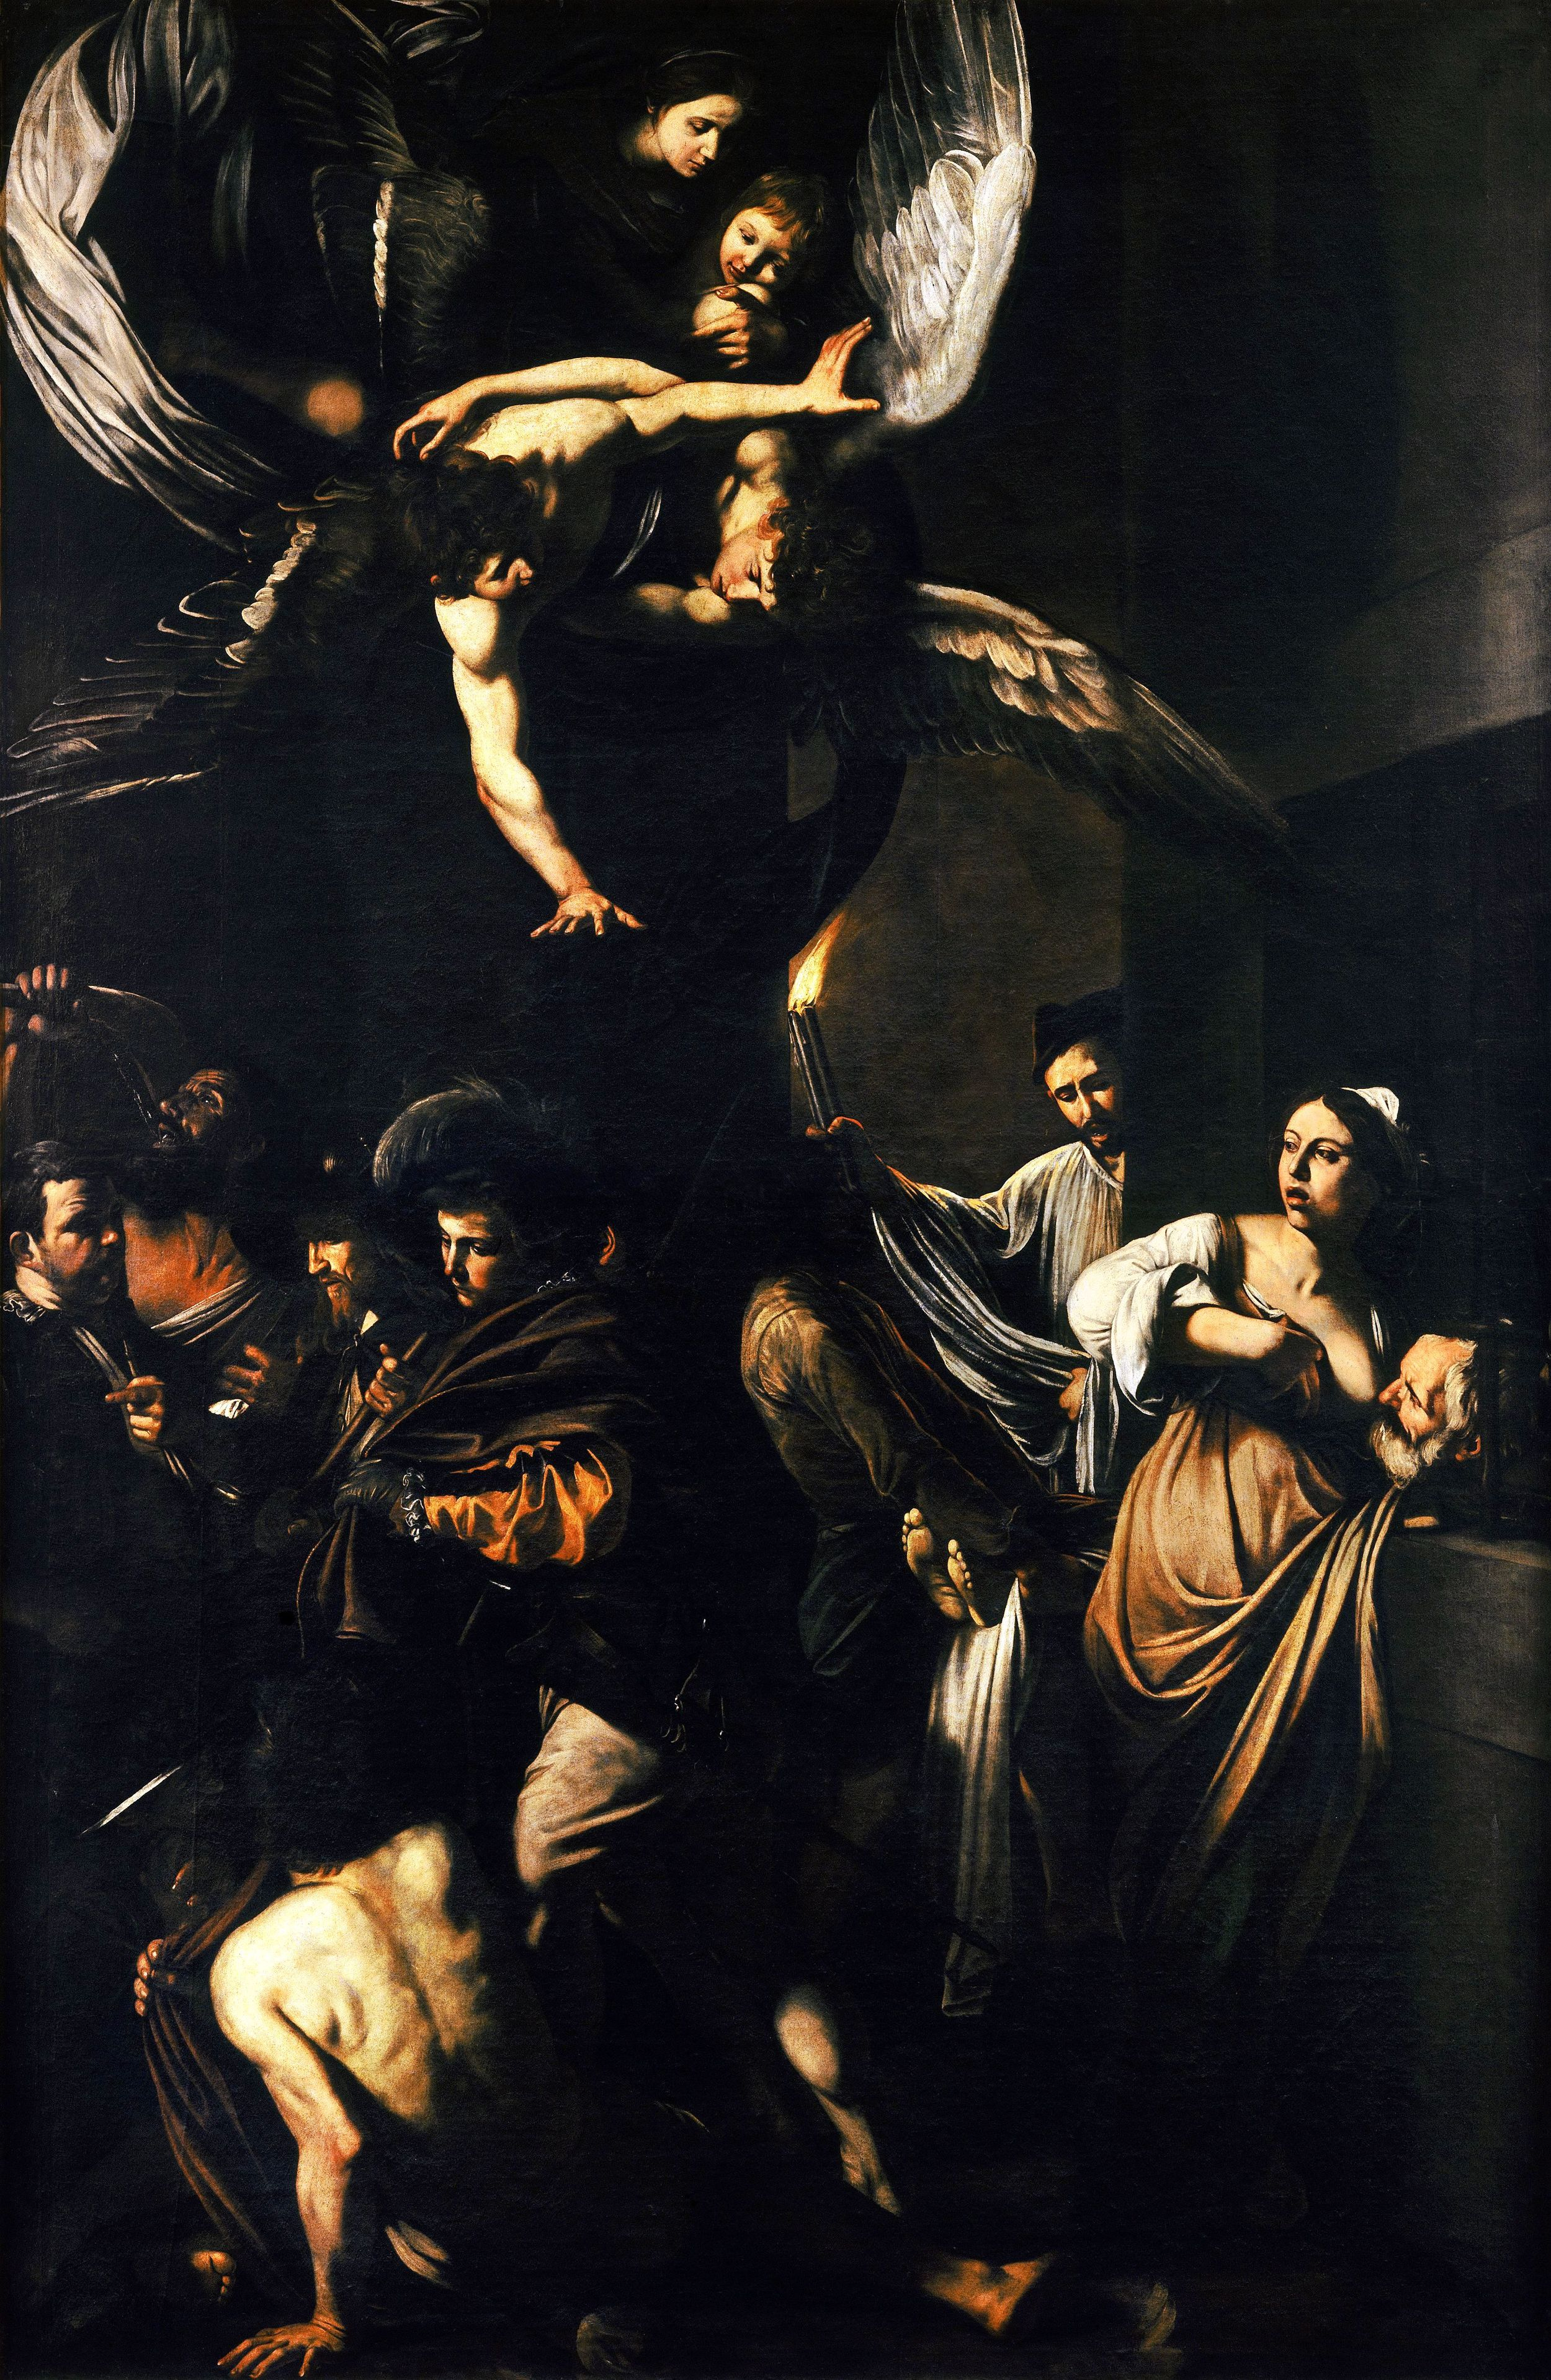 I would be remiss if at some point I didn't mention Caravaggio, whose works came to be a recurring element of the latter half of the semester and made the mandatory art history day in Naples bearable for those of us who weren't taking the class. This painting alone made up for the thousands of In Facts driven violently into our ears that day.